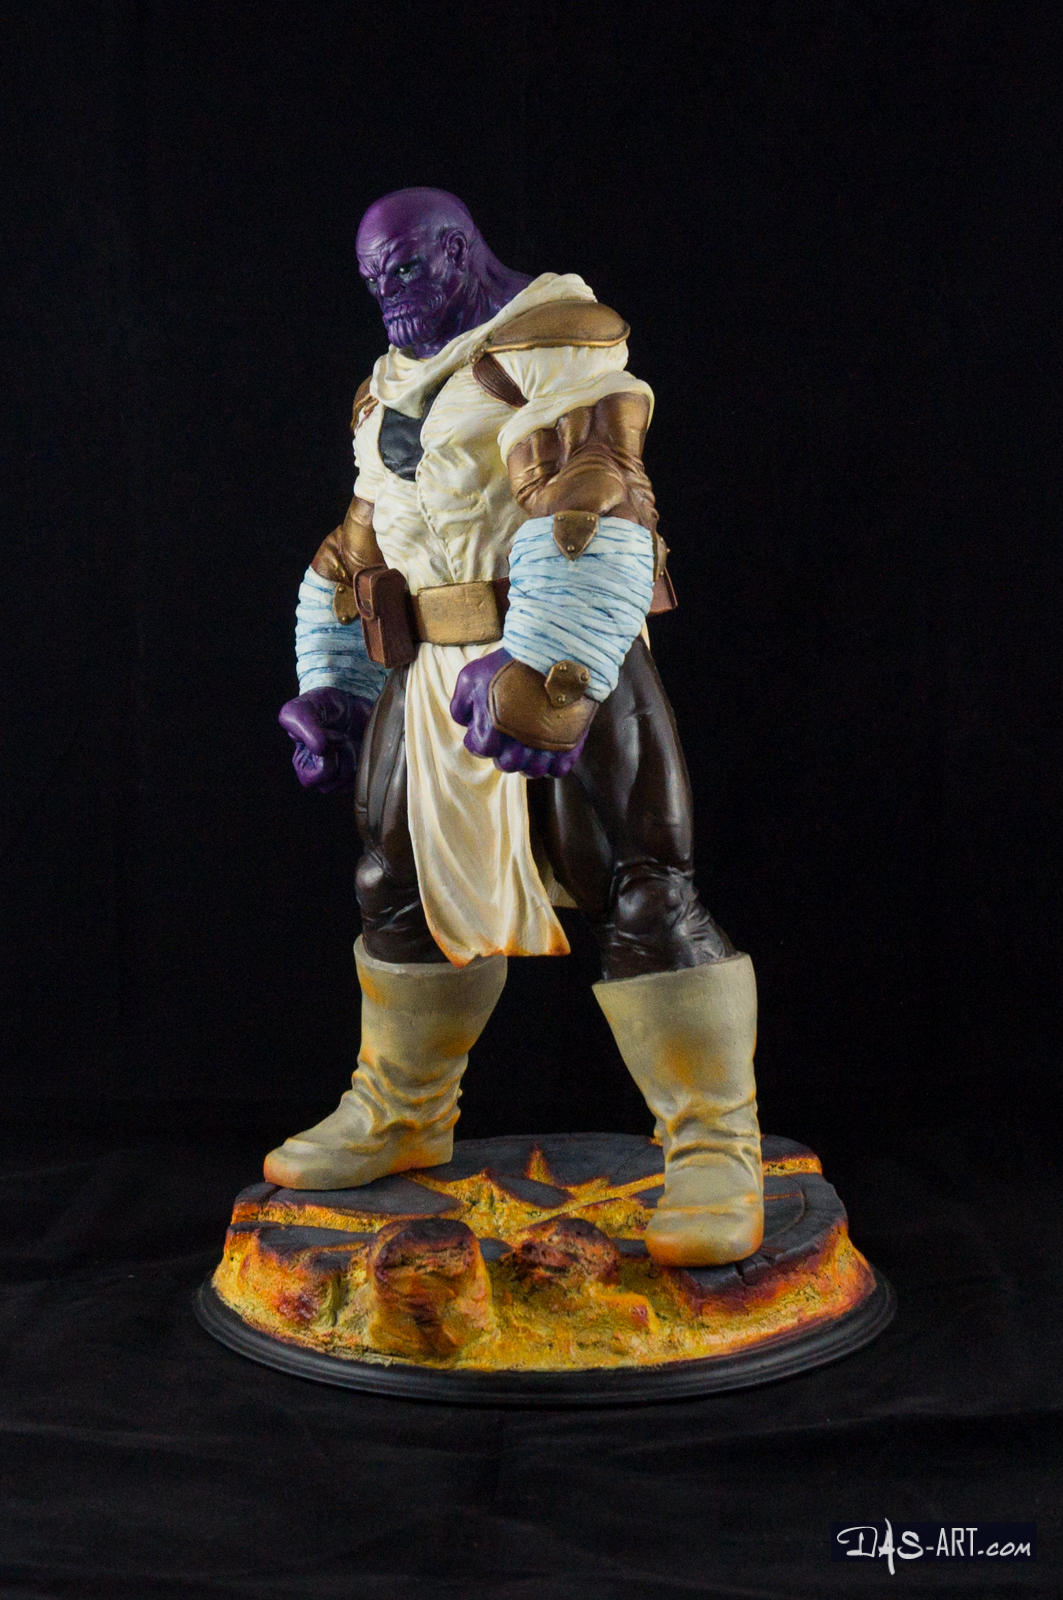 [GK painting #19] Thanos statue - 002 by DasArt